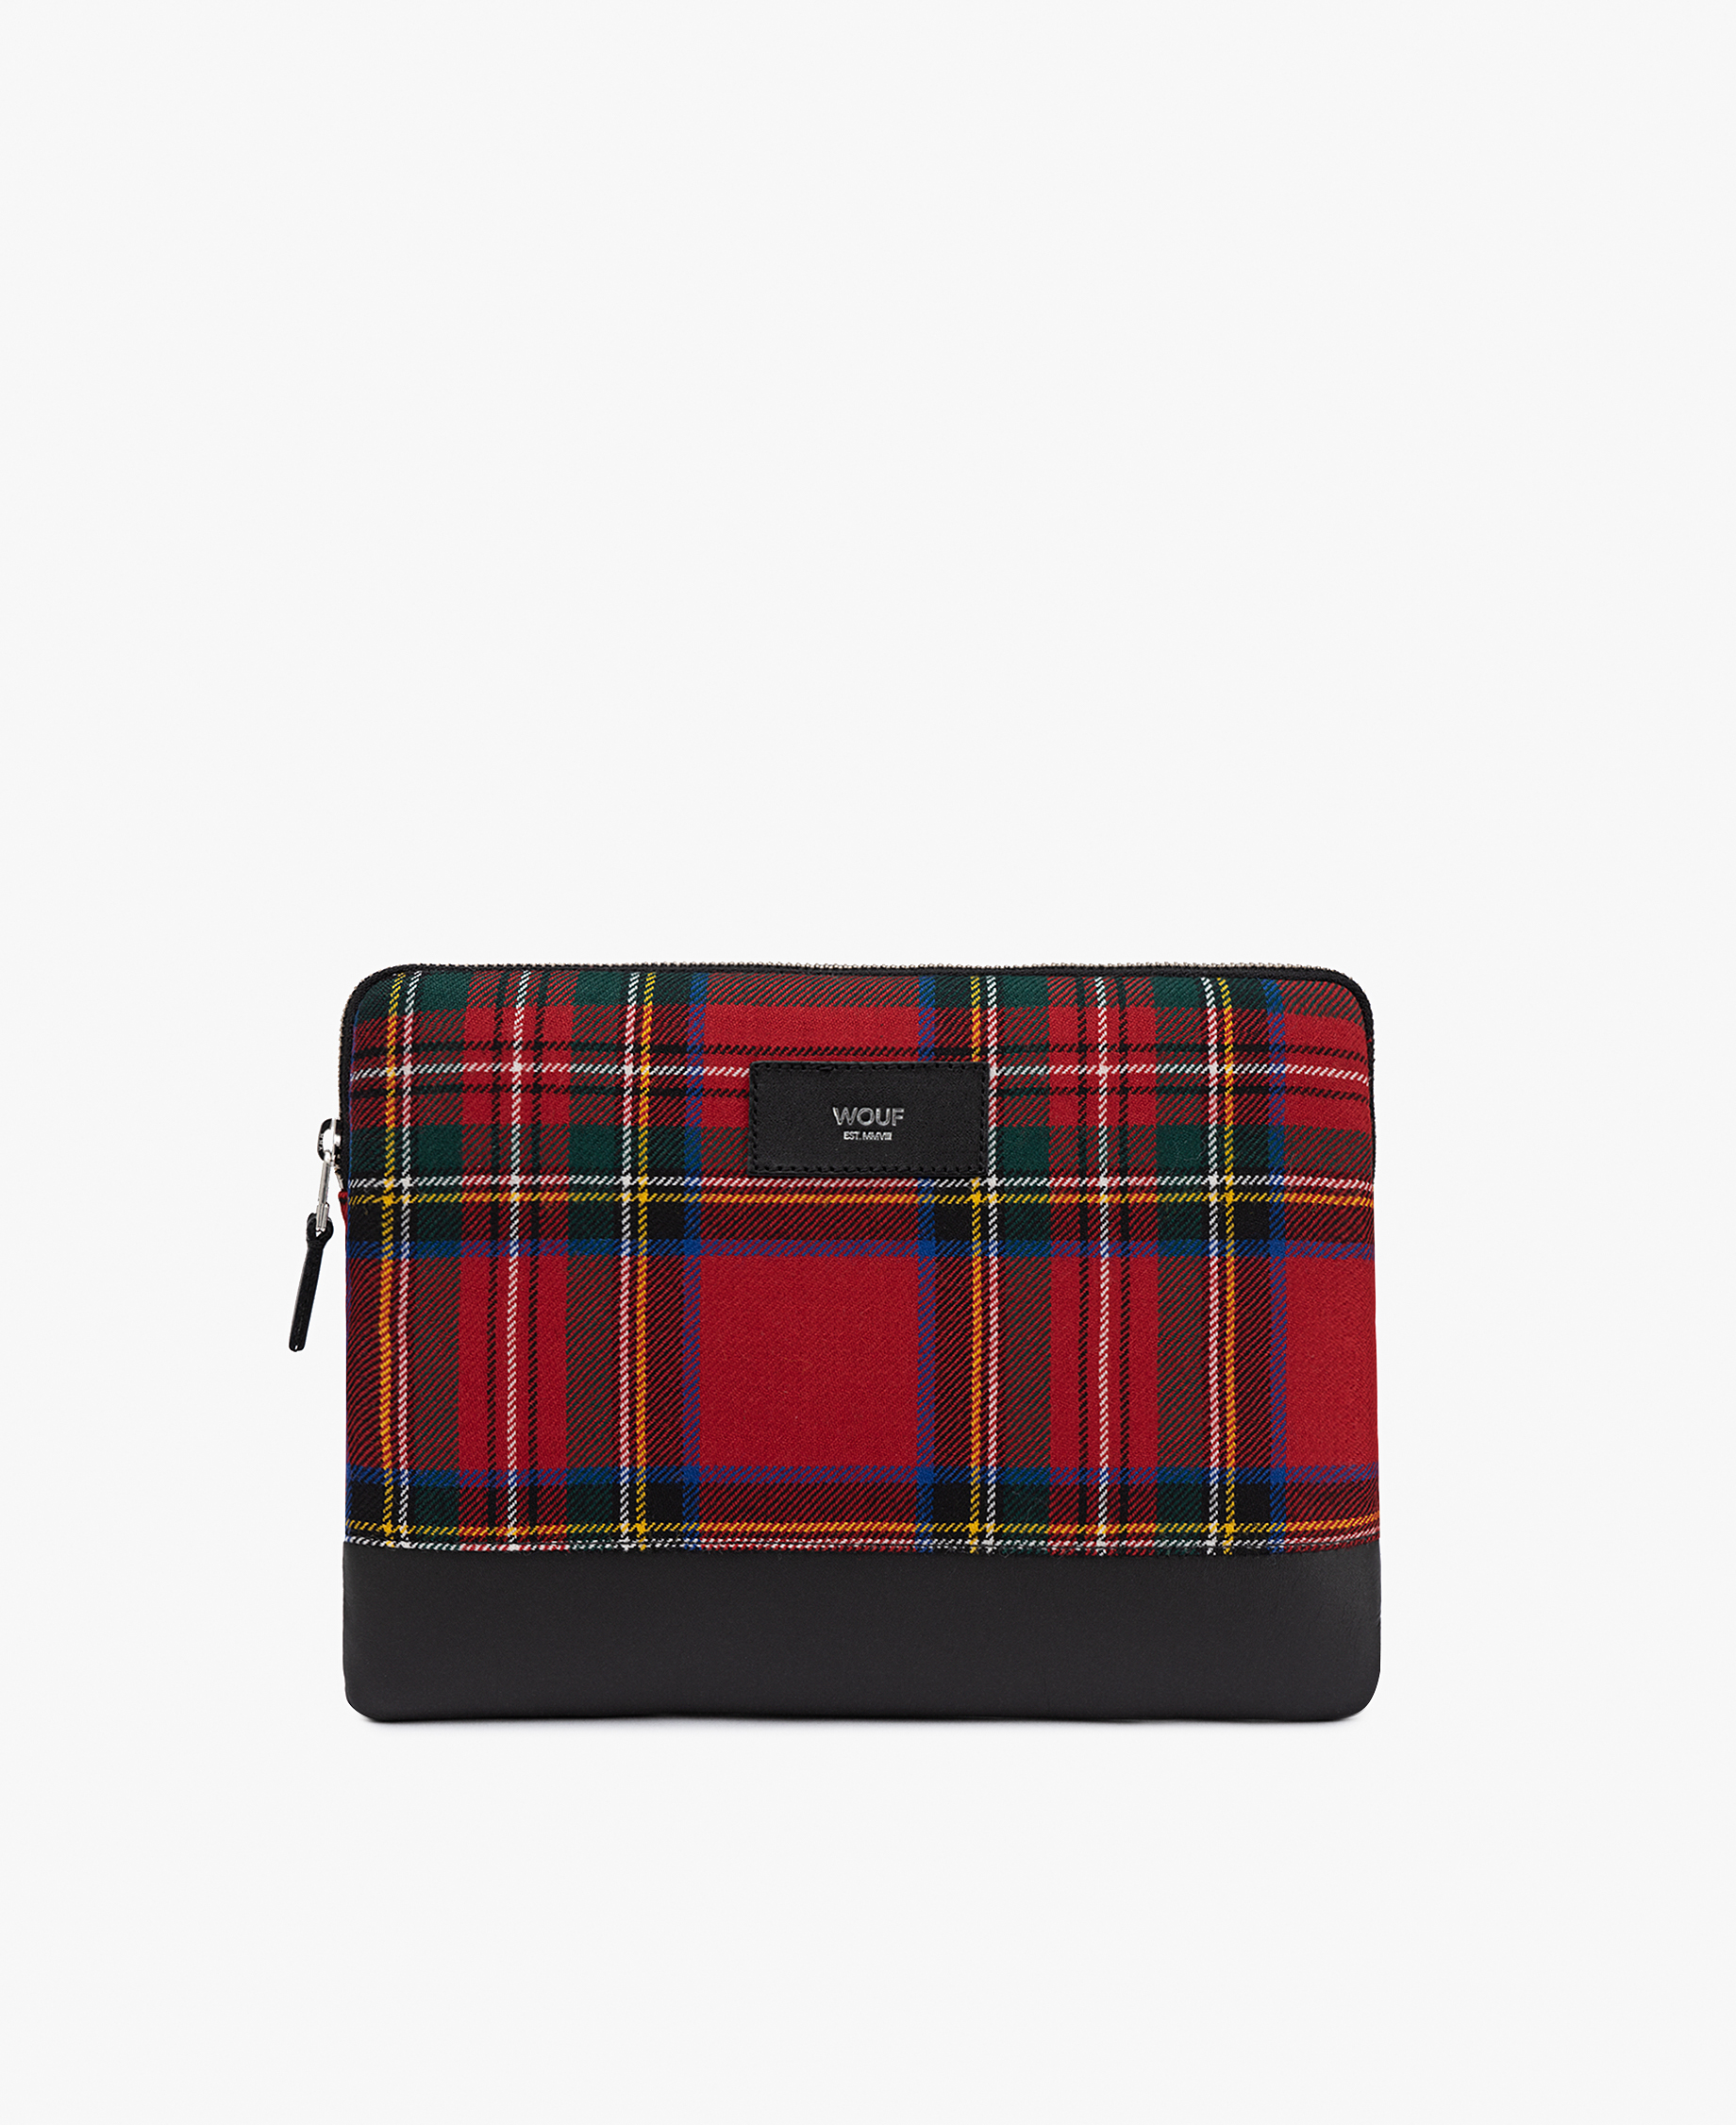 red scottish ipad case